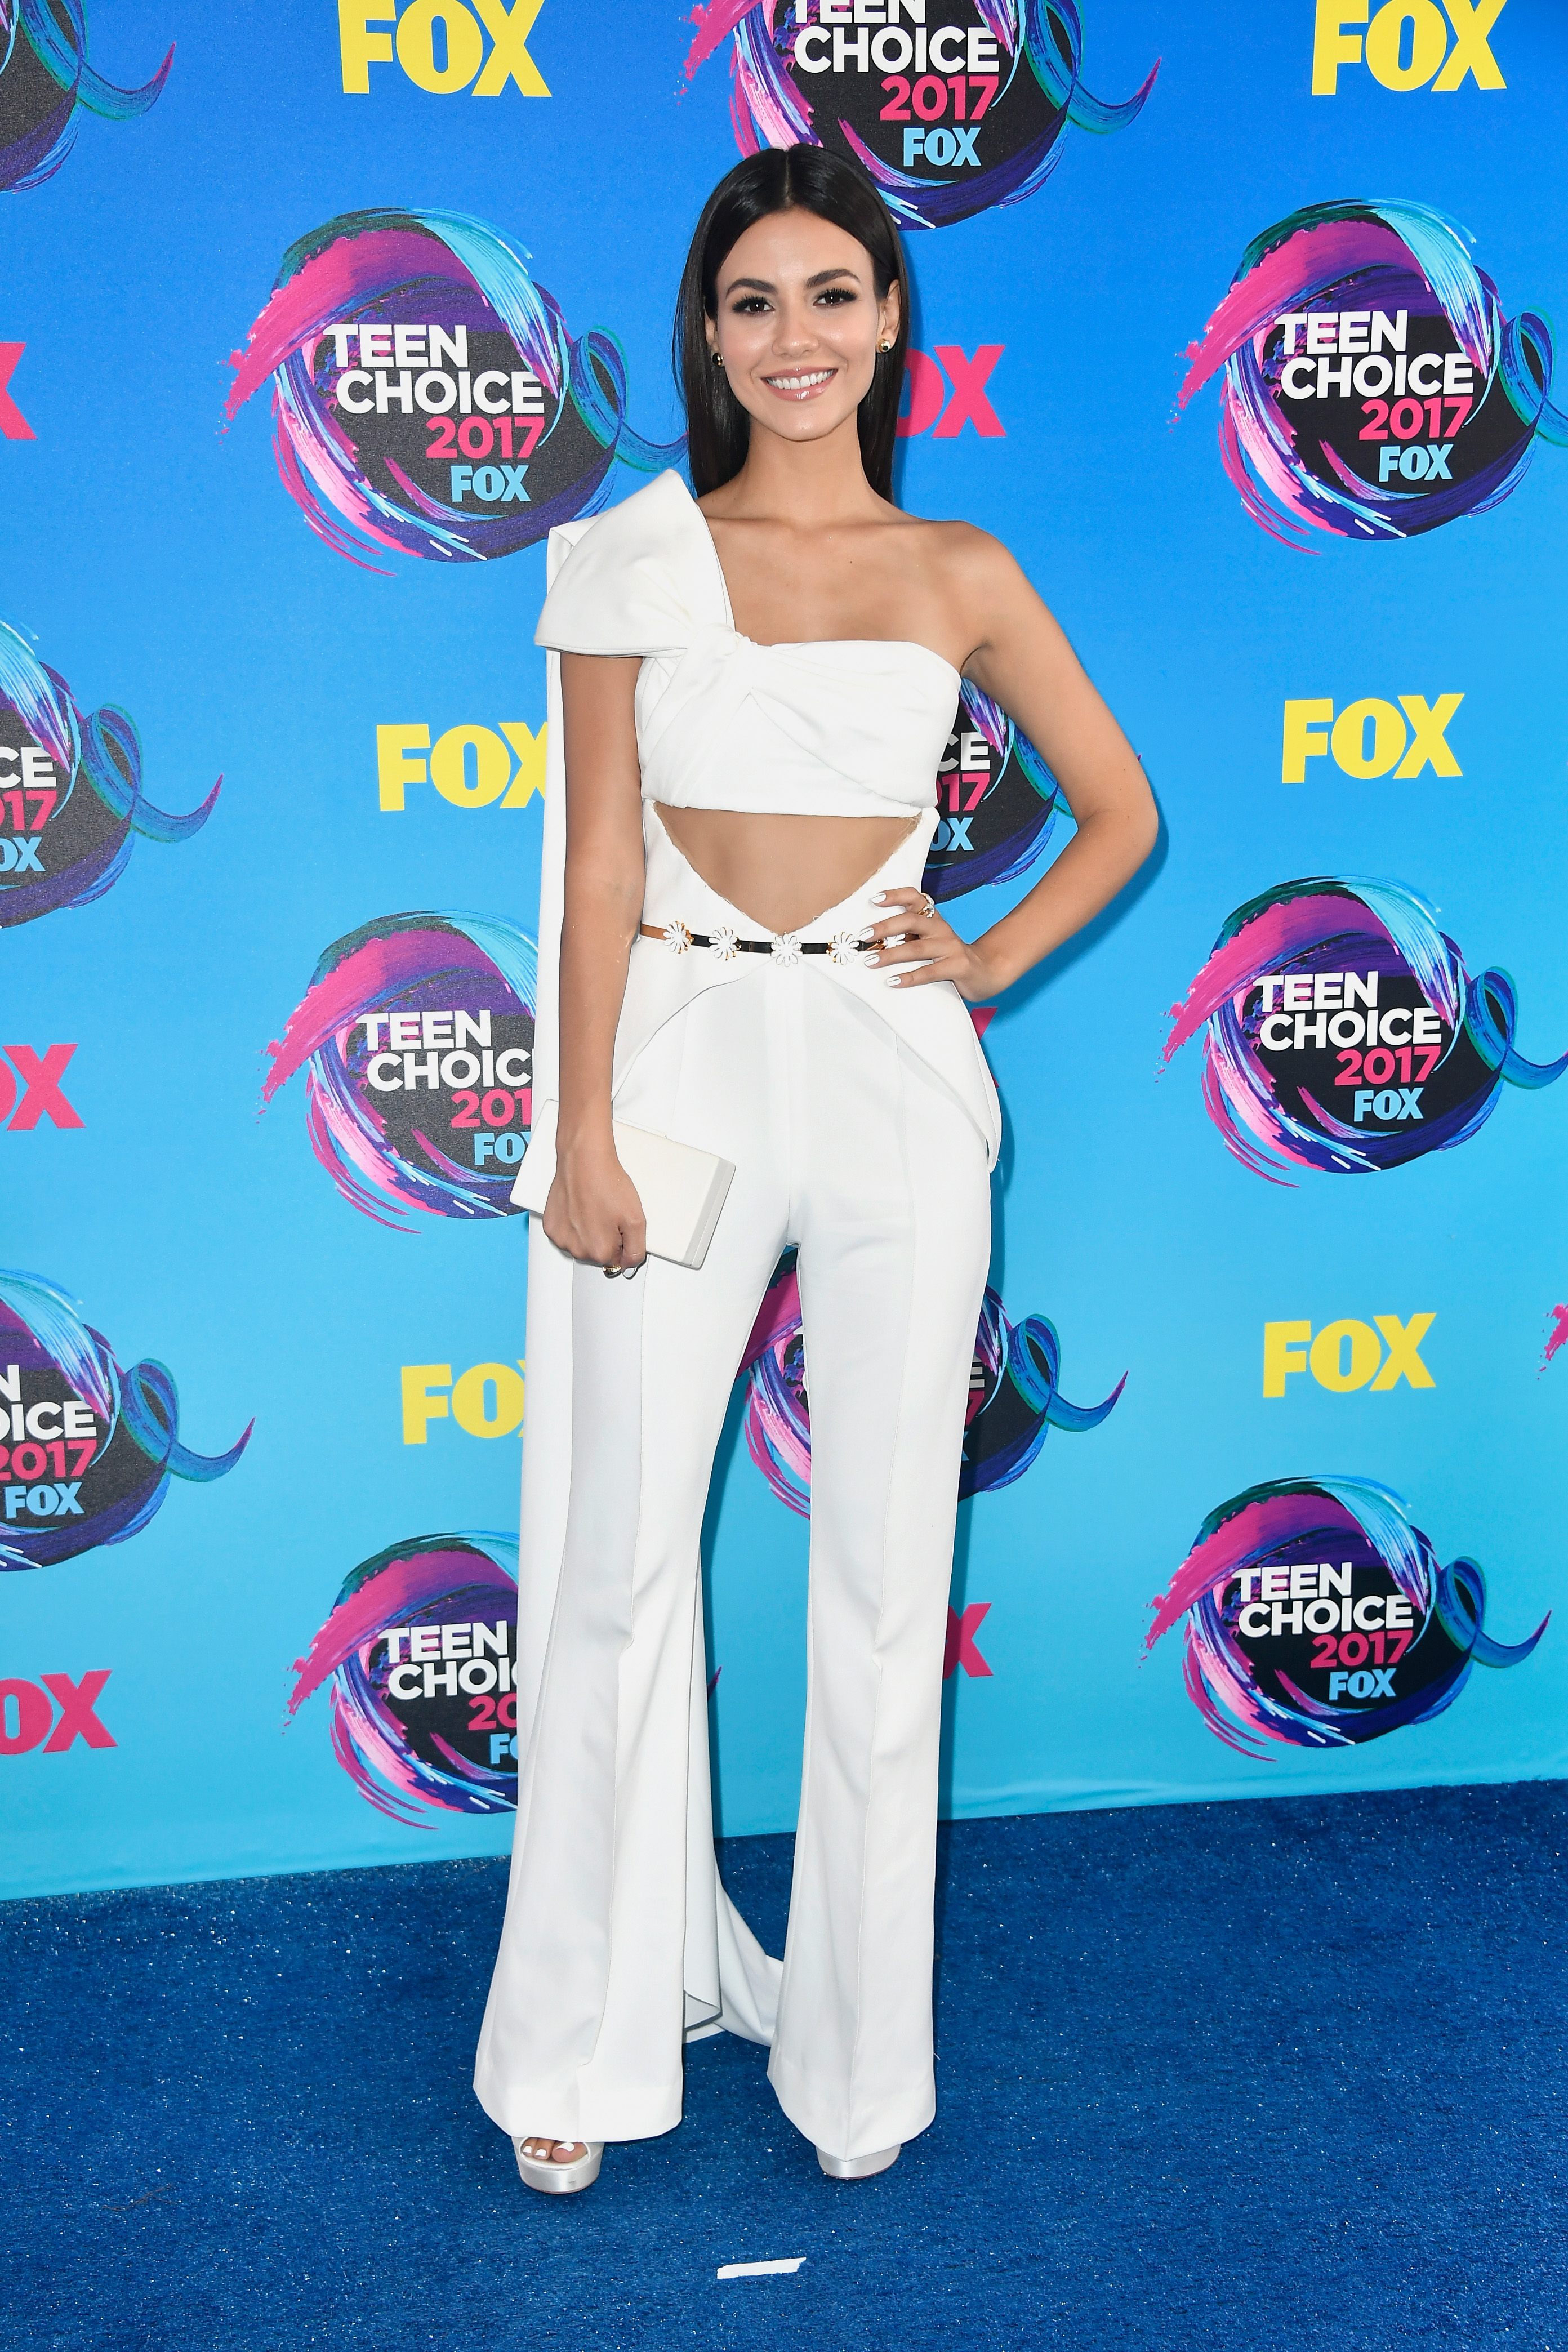 Teen Choice Awards 2017 - Victoria Justice